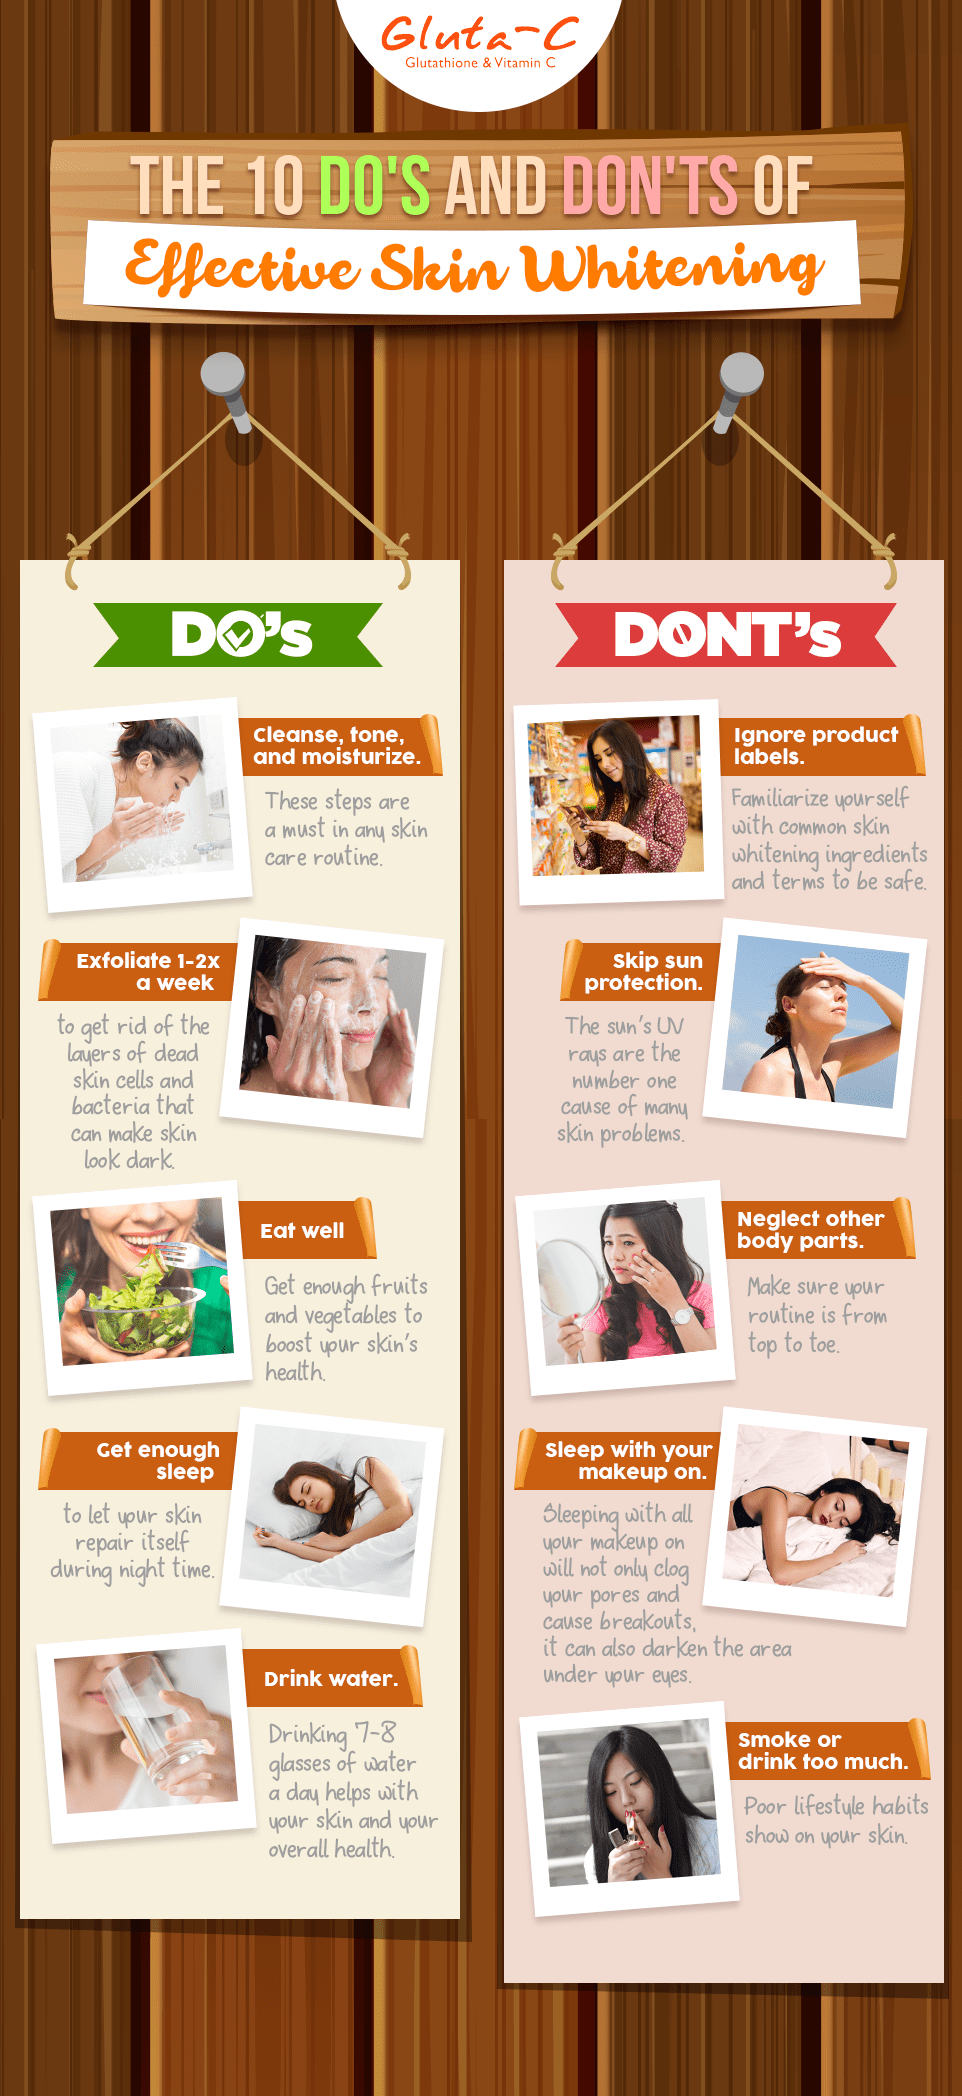 The-10-Do_s-and-Don_ts-of-Effective-Skin-Whitening-min